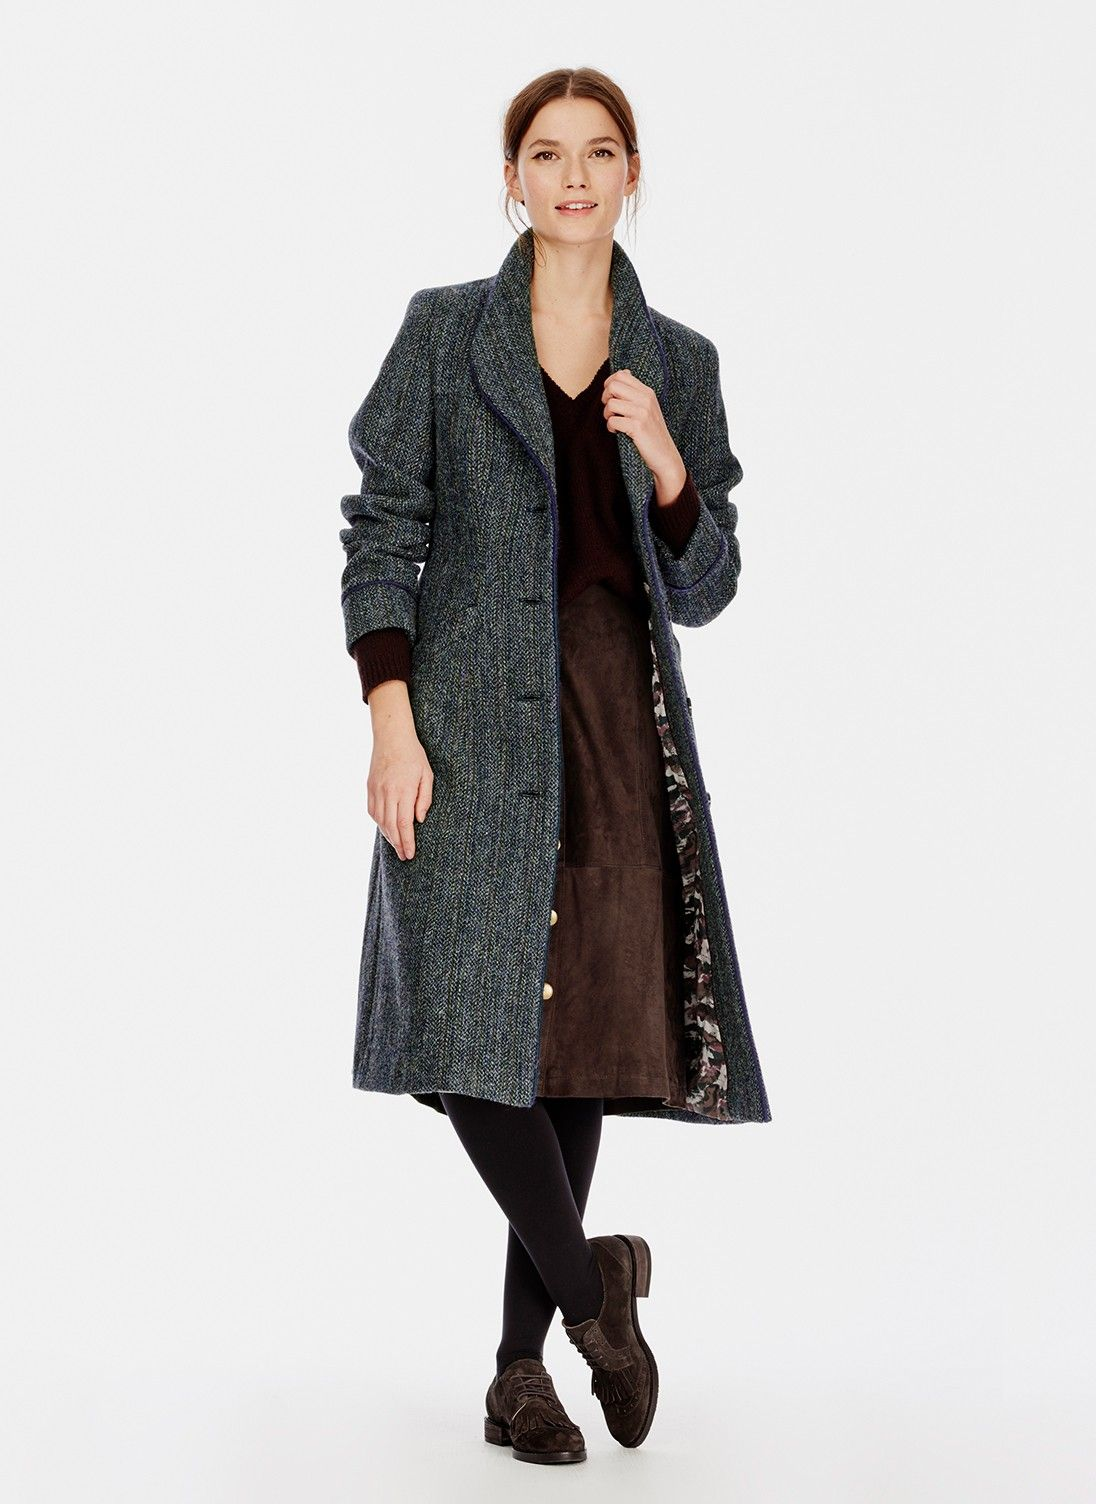 Harris Tweed Coat - Women's Coats & Jackets | Brora | Screenshots ...